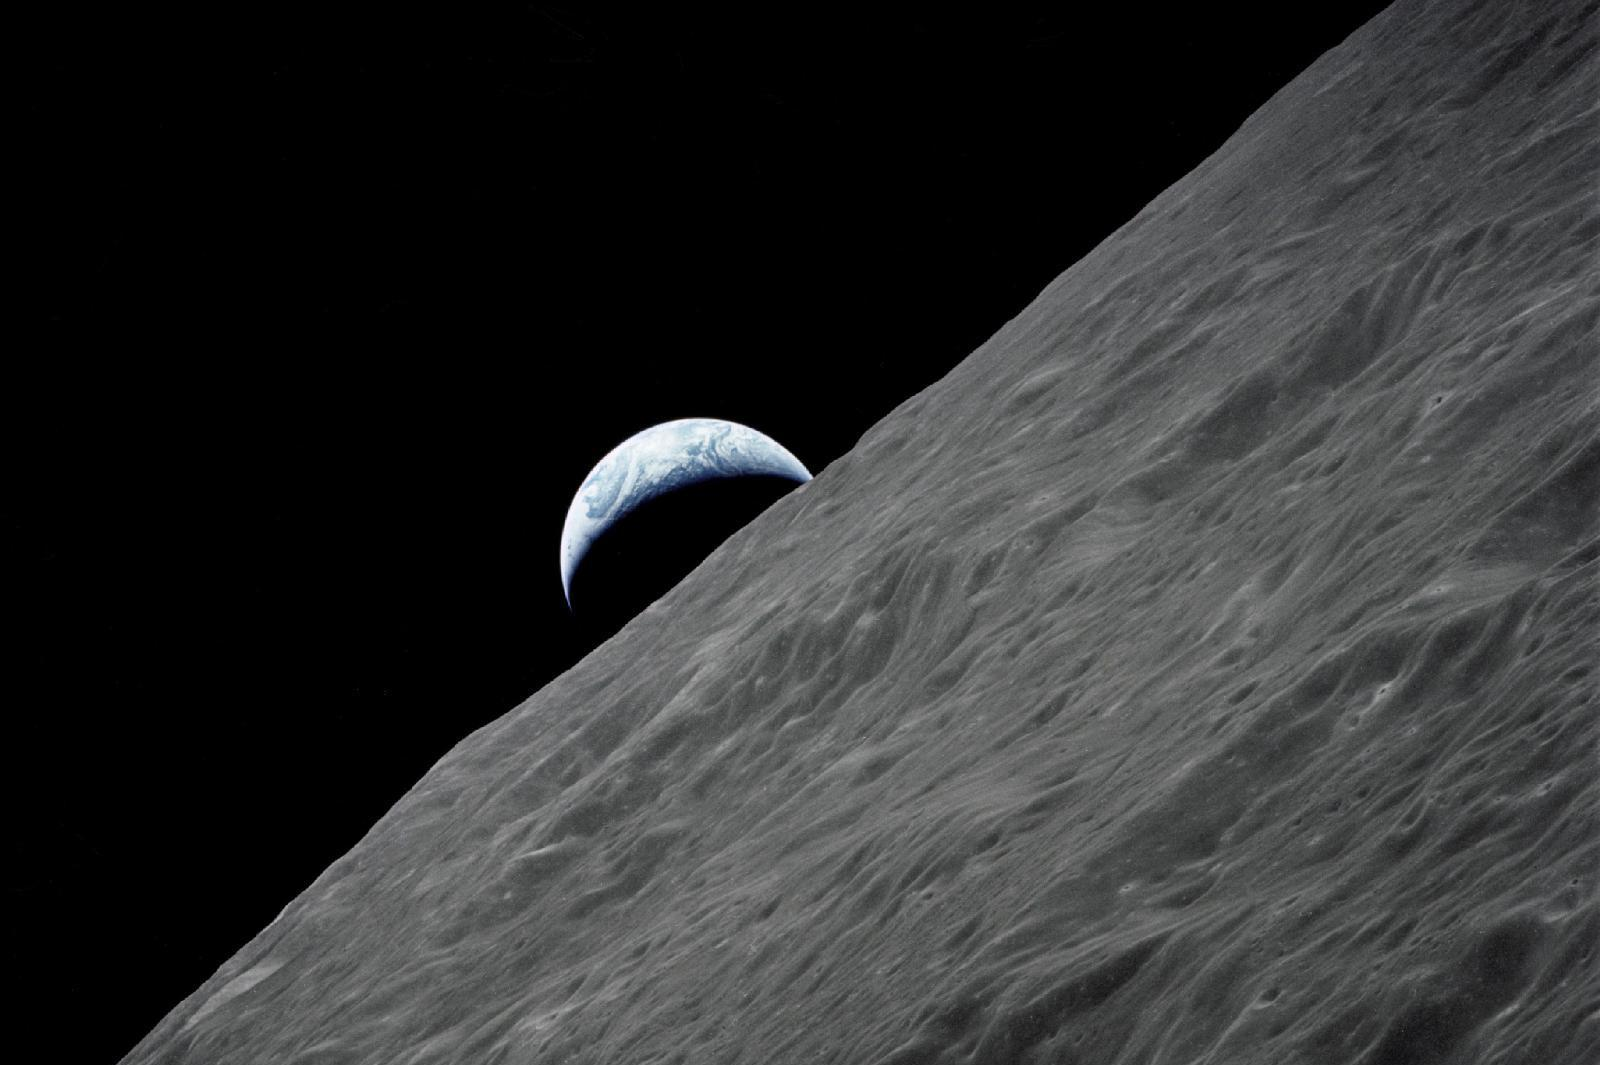 A camera aboard the Apollo 17 spacecraft captured this glimpse of Earth peeking out above the lunar horizon during the final lunar mission.